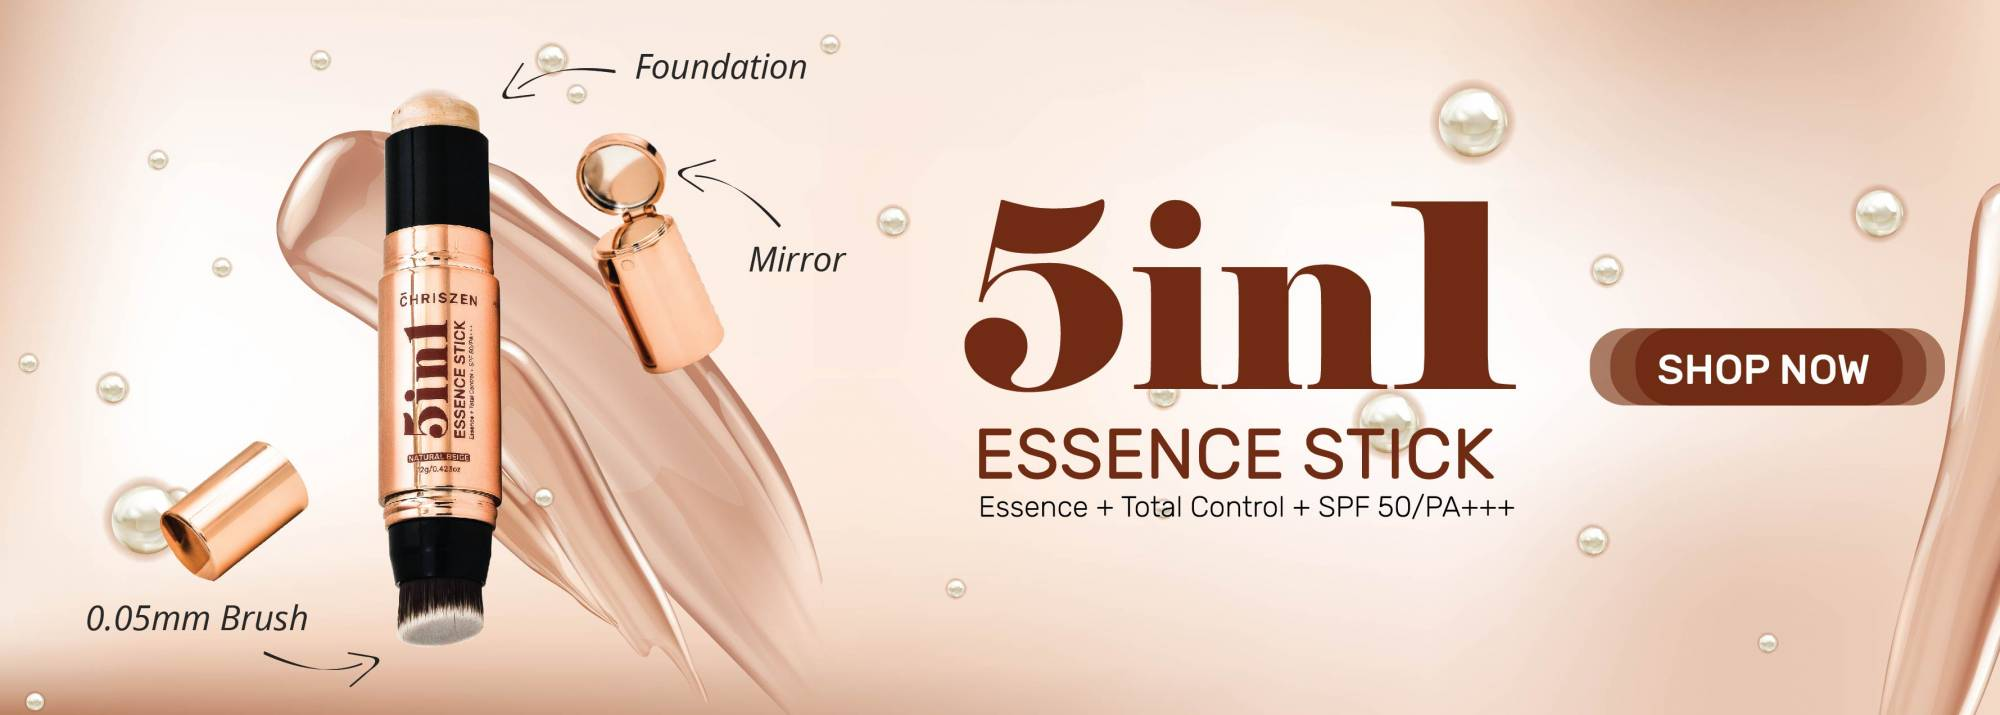 5 in 1 essence stick banner